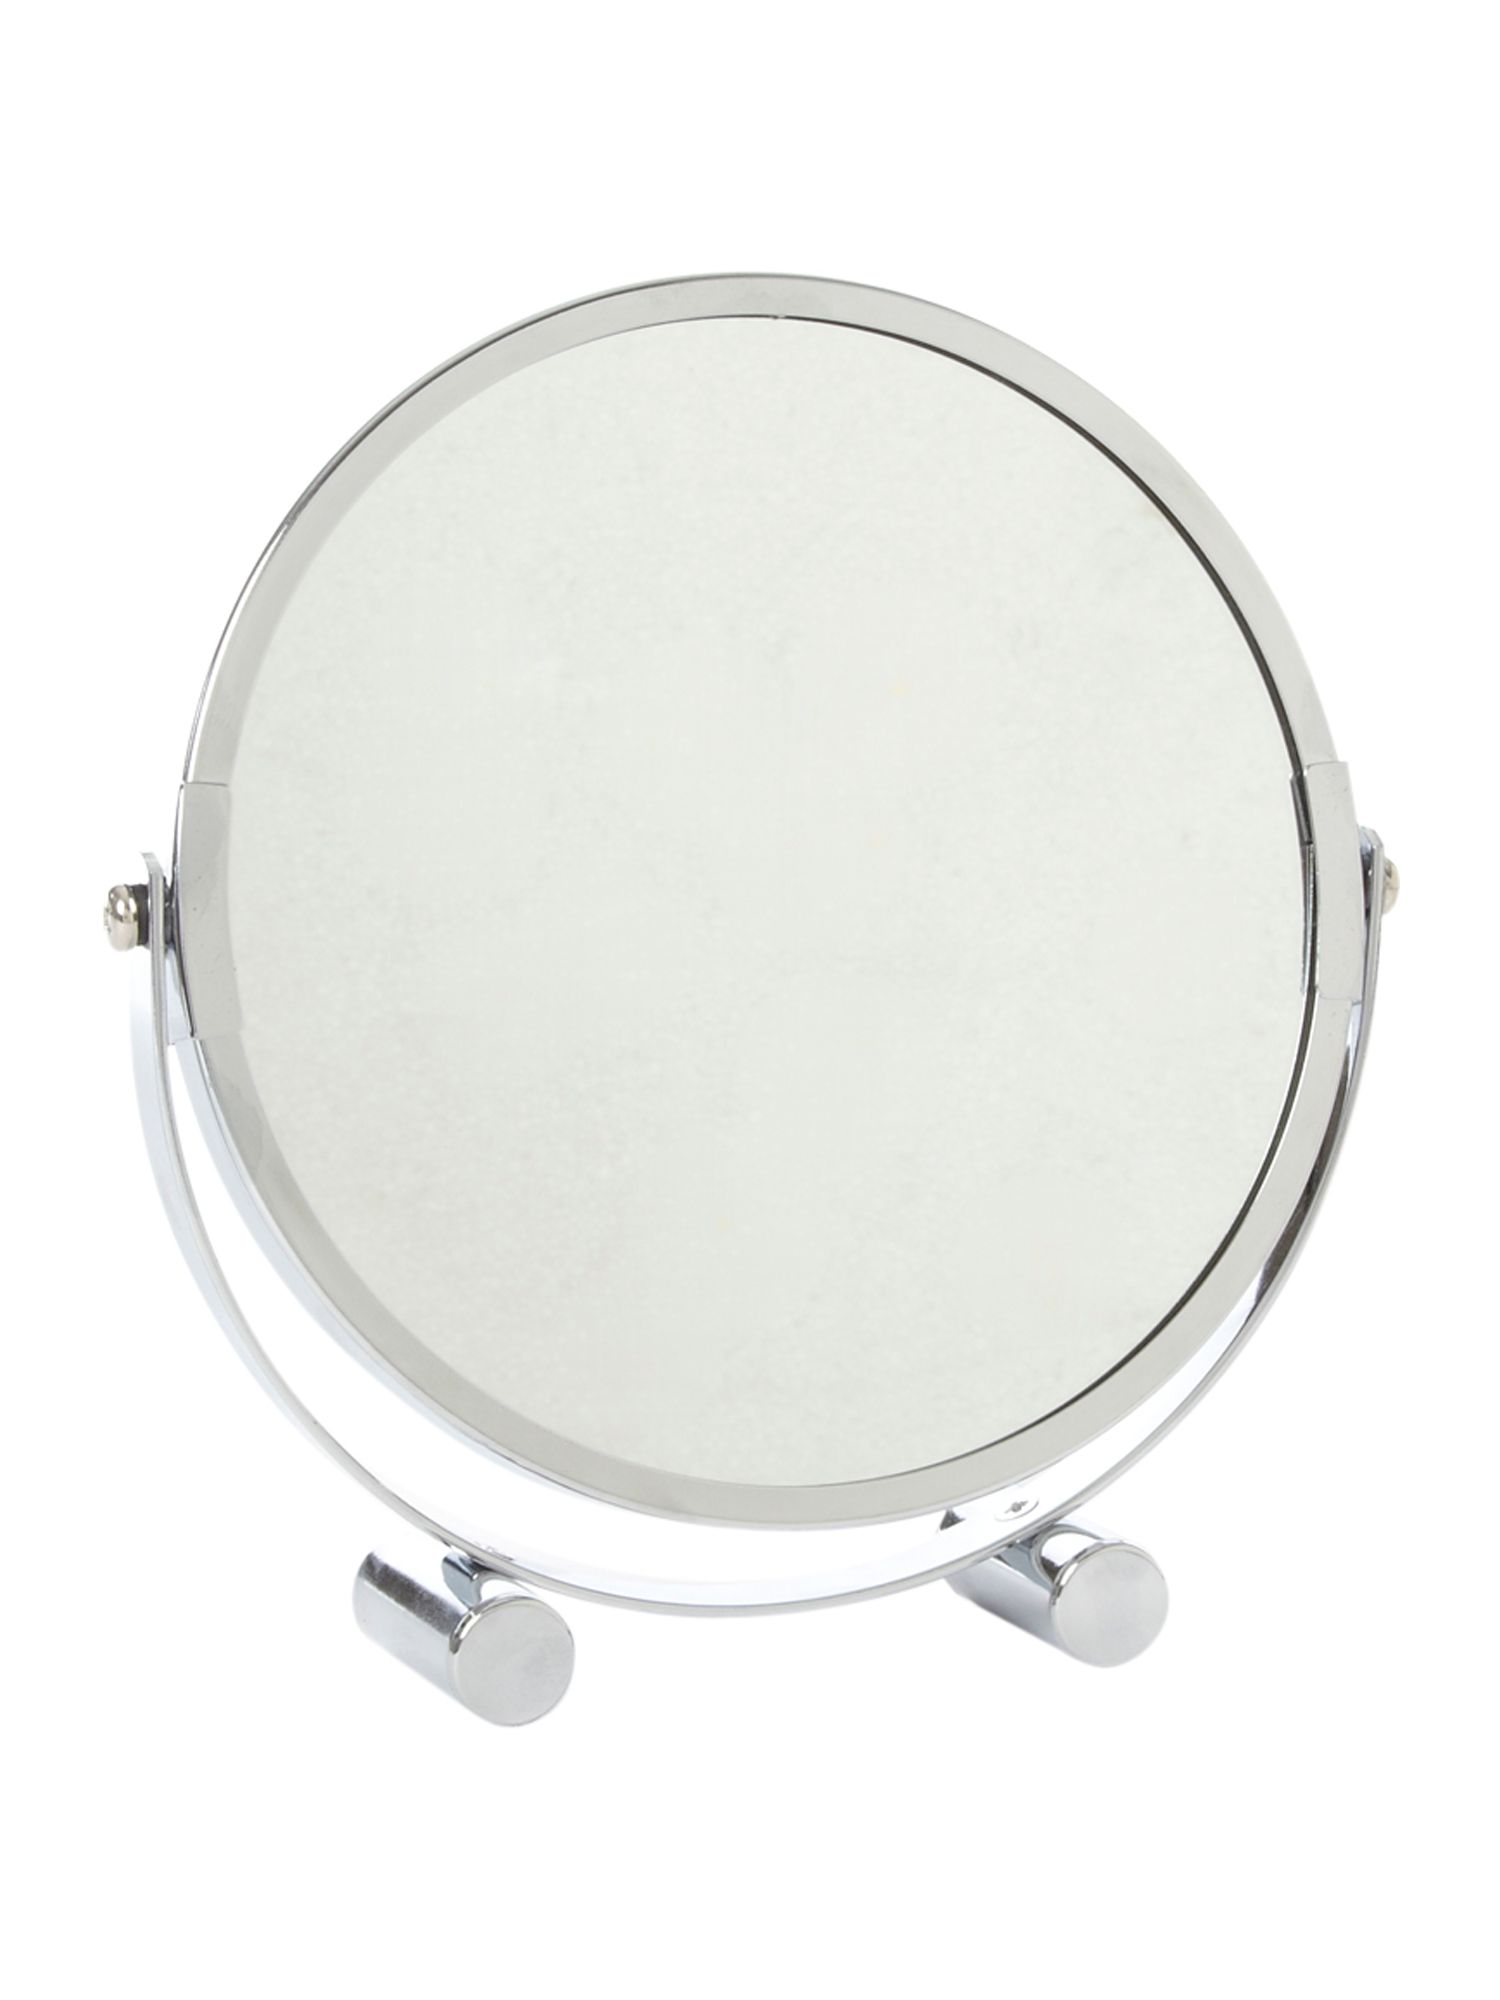 Linea Shaving Mirror In Silver From House Of Fraser Ebay